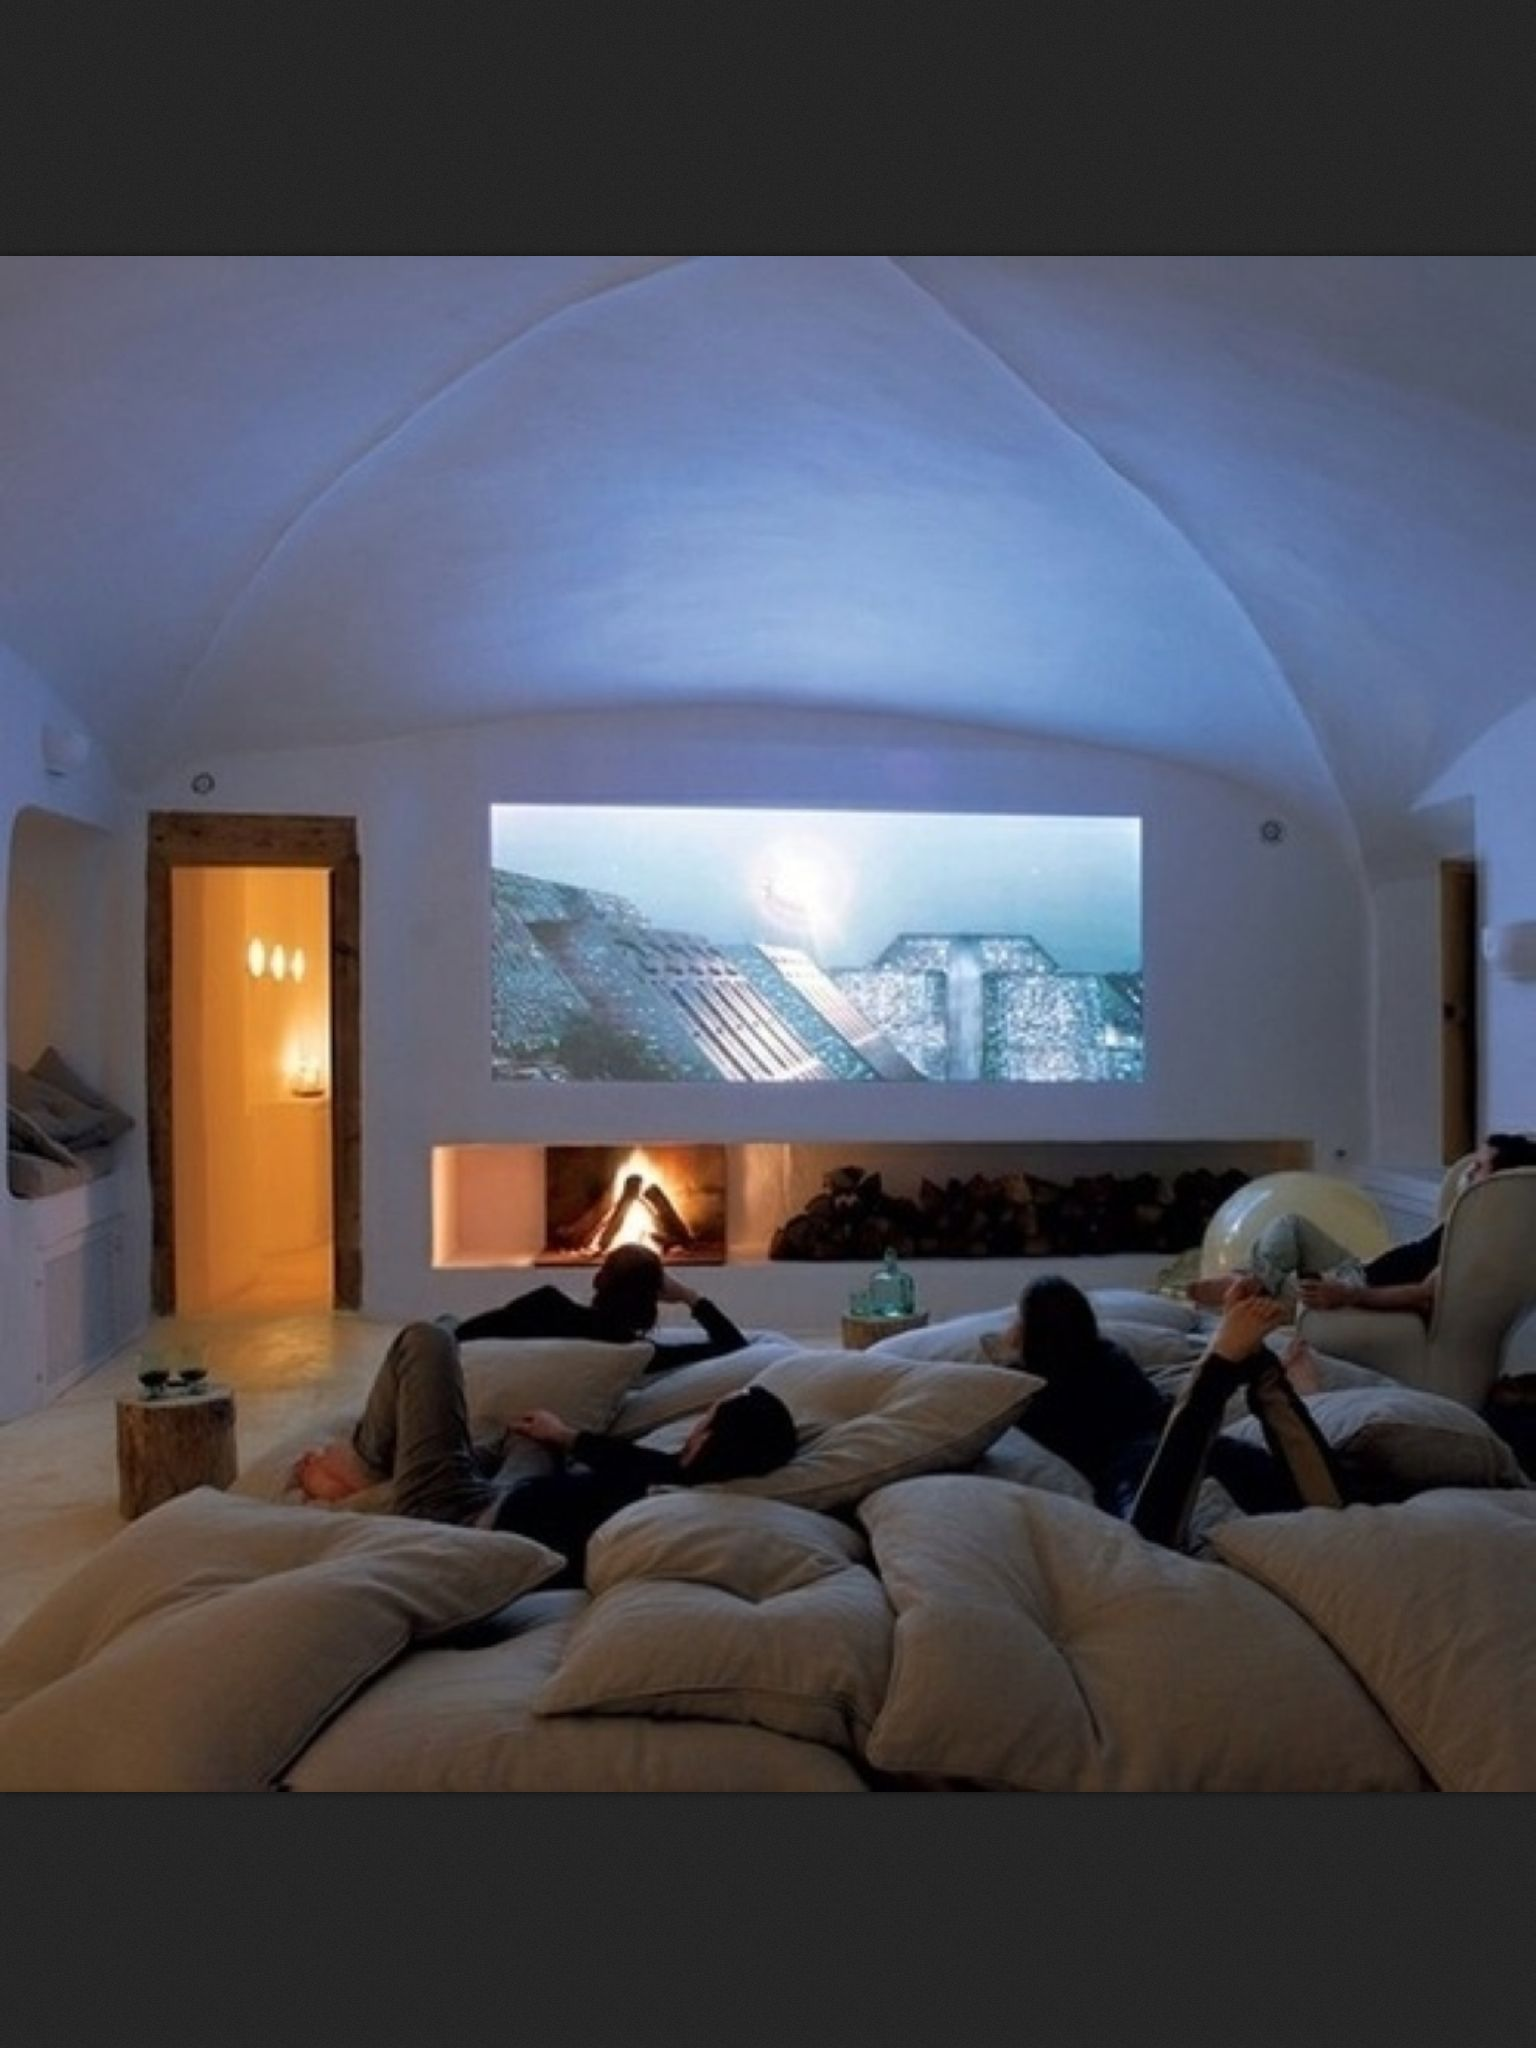 Floor Pillow To Watch Tv : Play Room/ Theater Room.... keep lots of oversized pillows stored and use a projector instead of ...